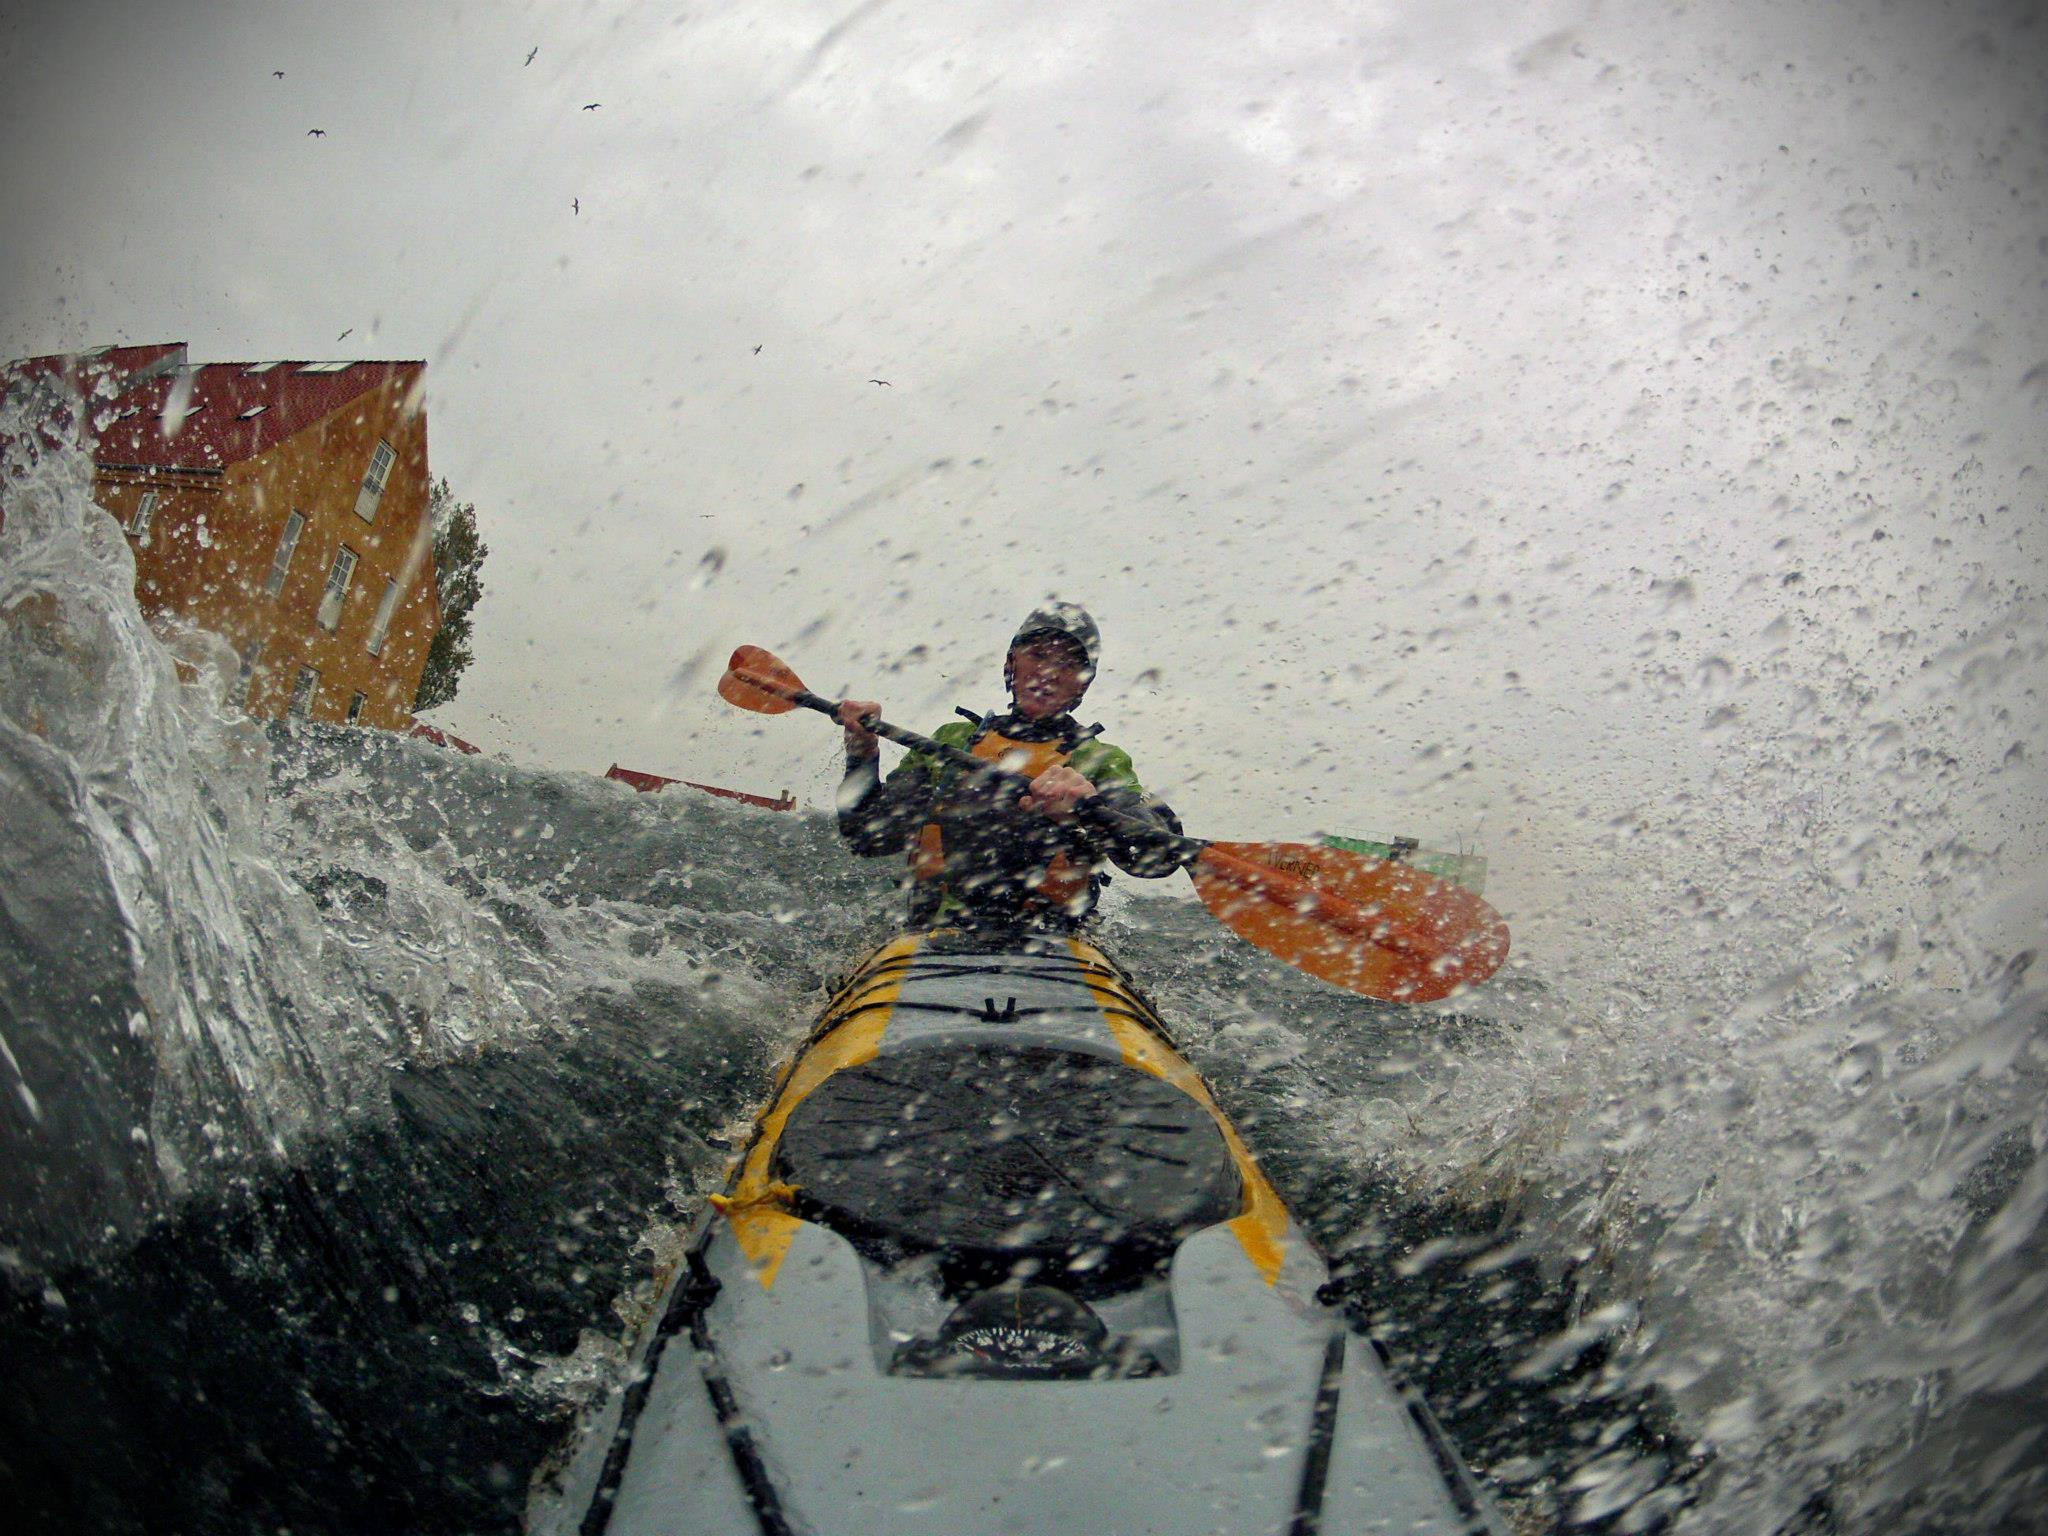 Kayak and Canoe Photo of the Day!